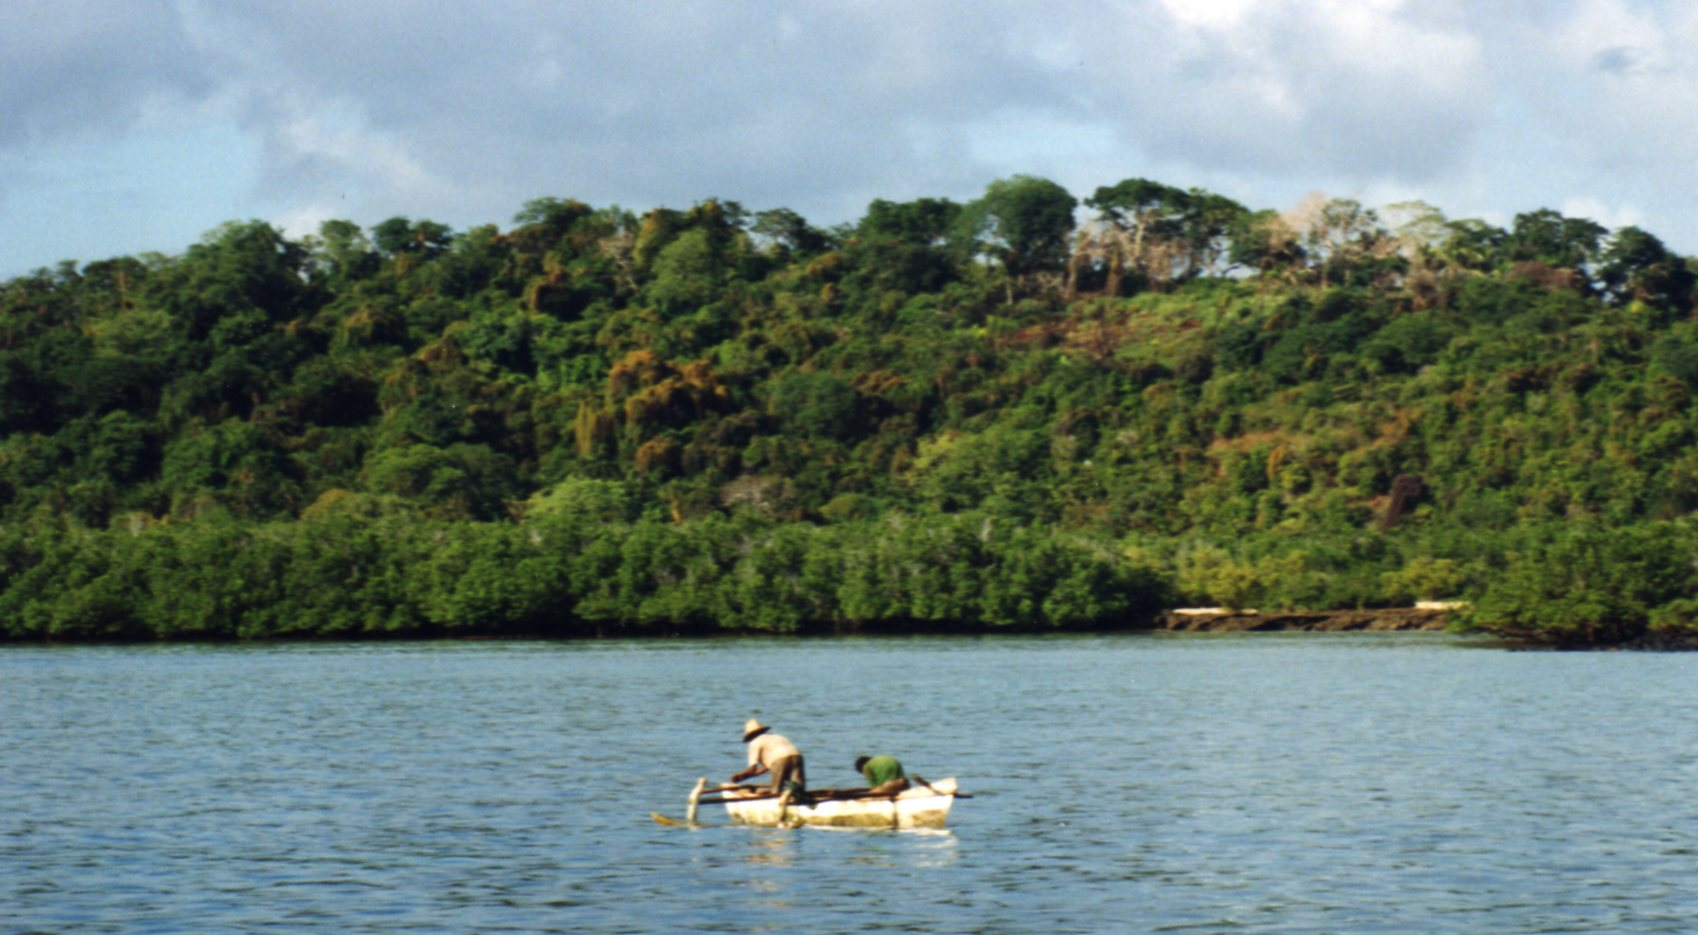 Fishermen in the Comoros